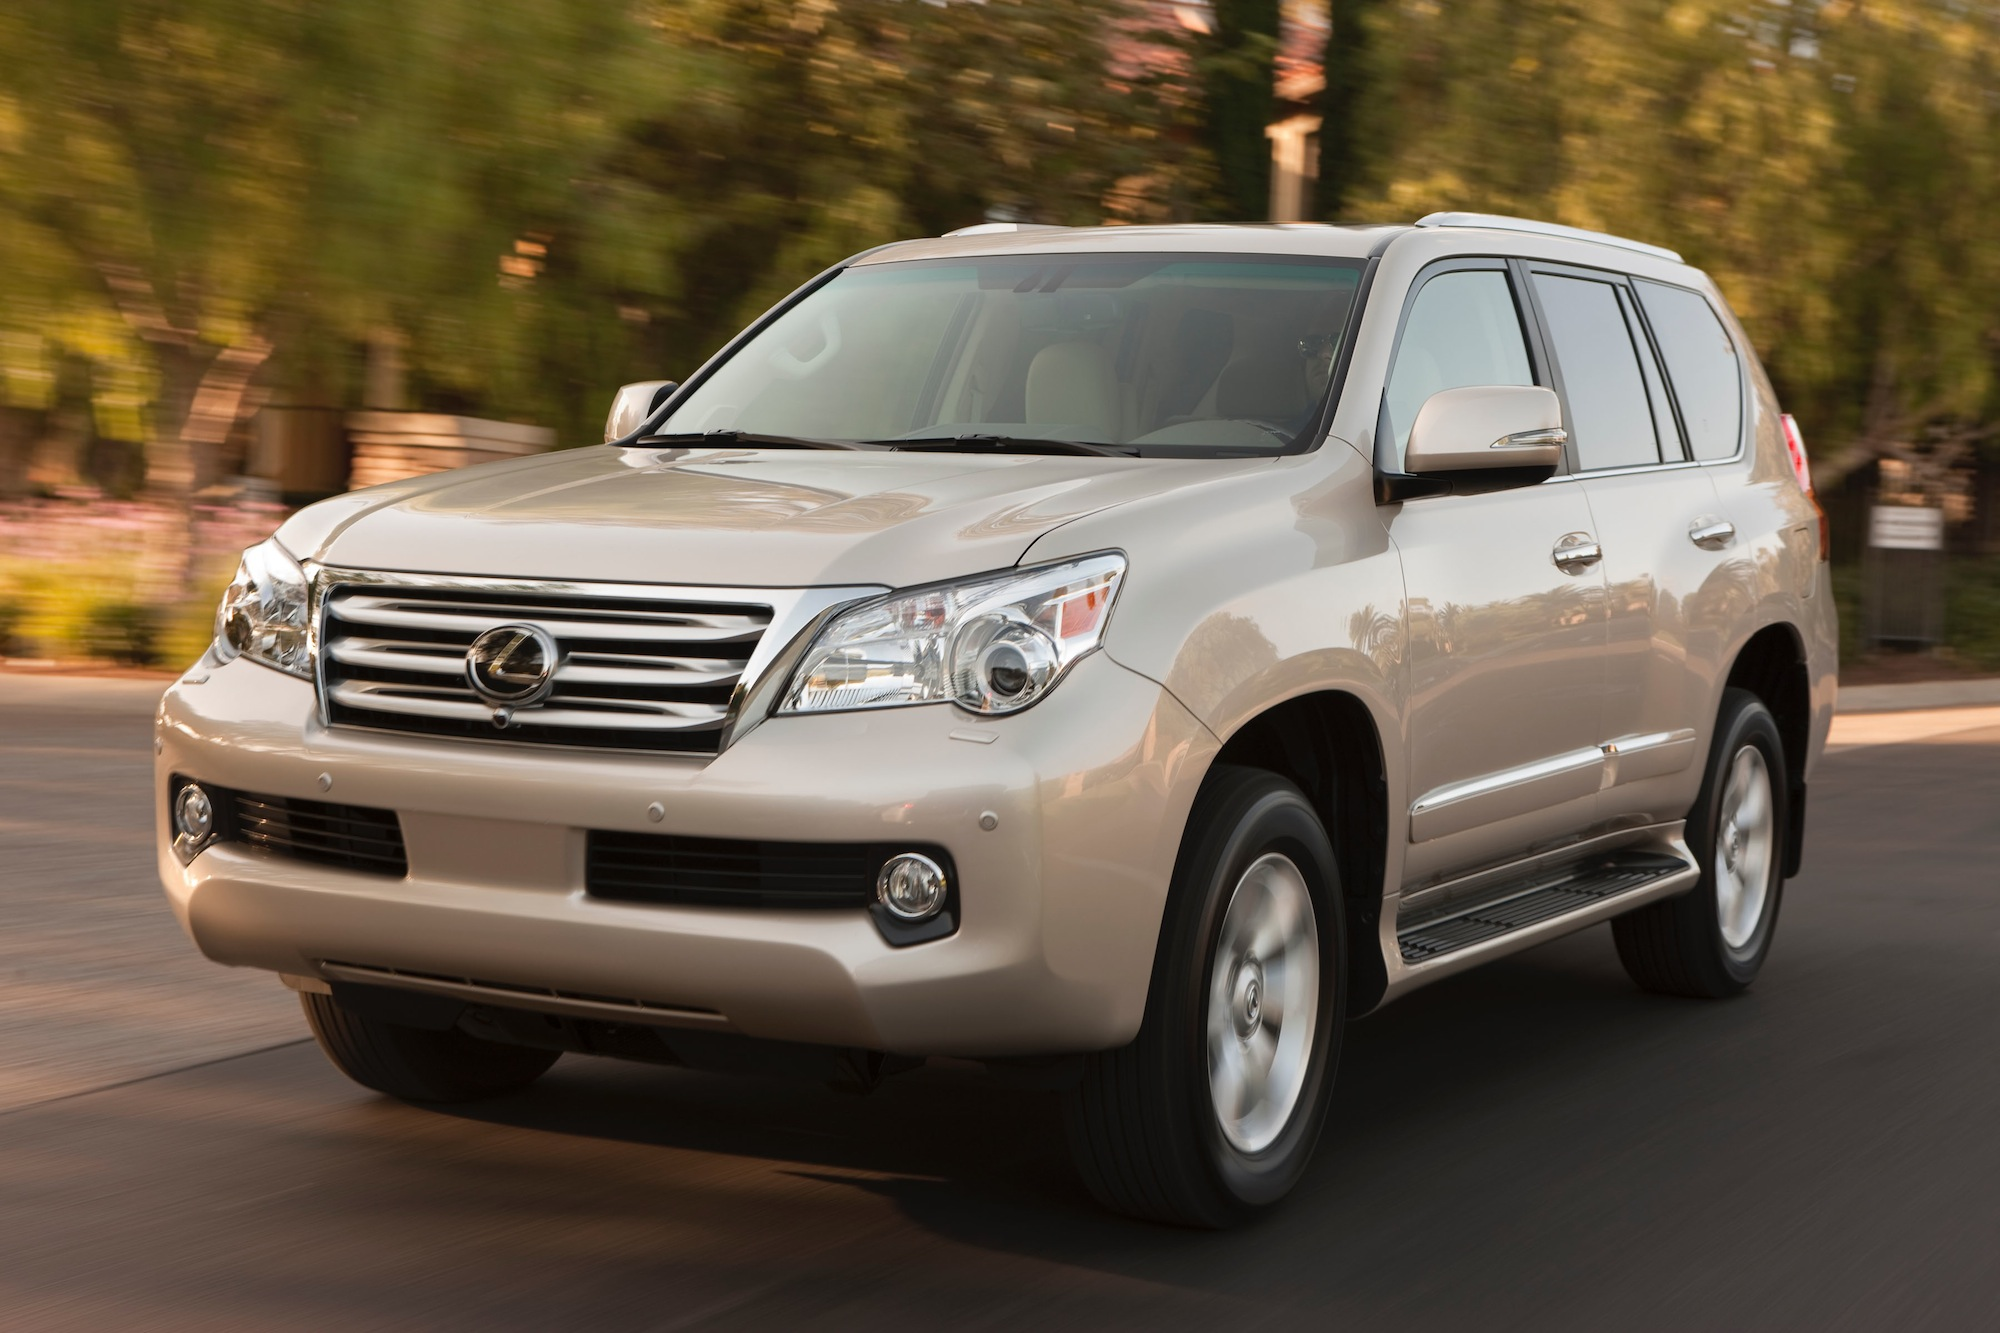 2013 lexus gx 460 review ratings specs prices and photos the car connection. Black Bedroom Furniture Sets. Home Design Ideas